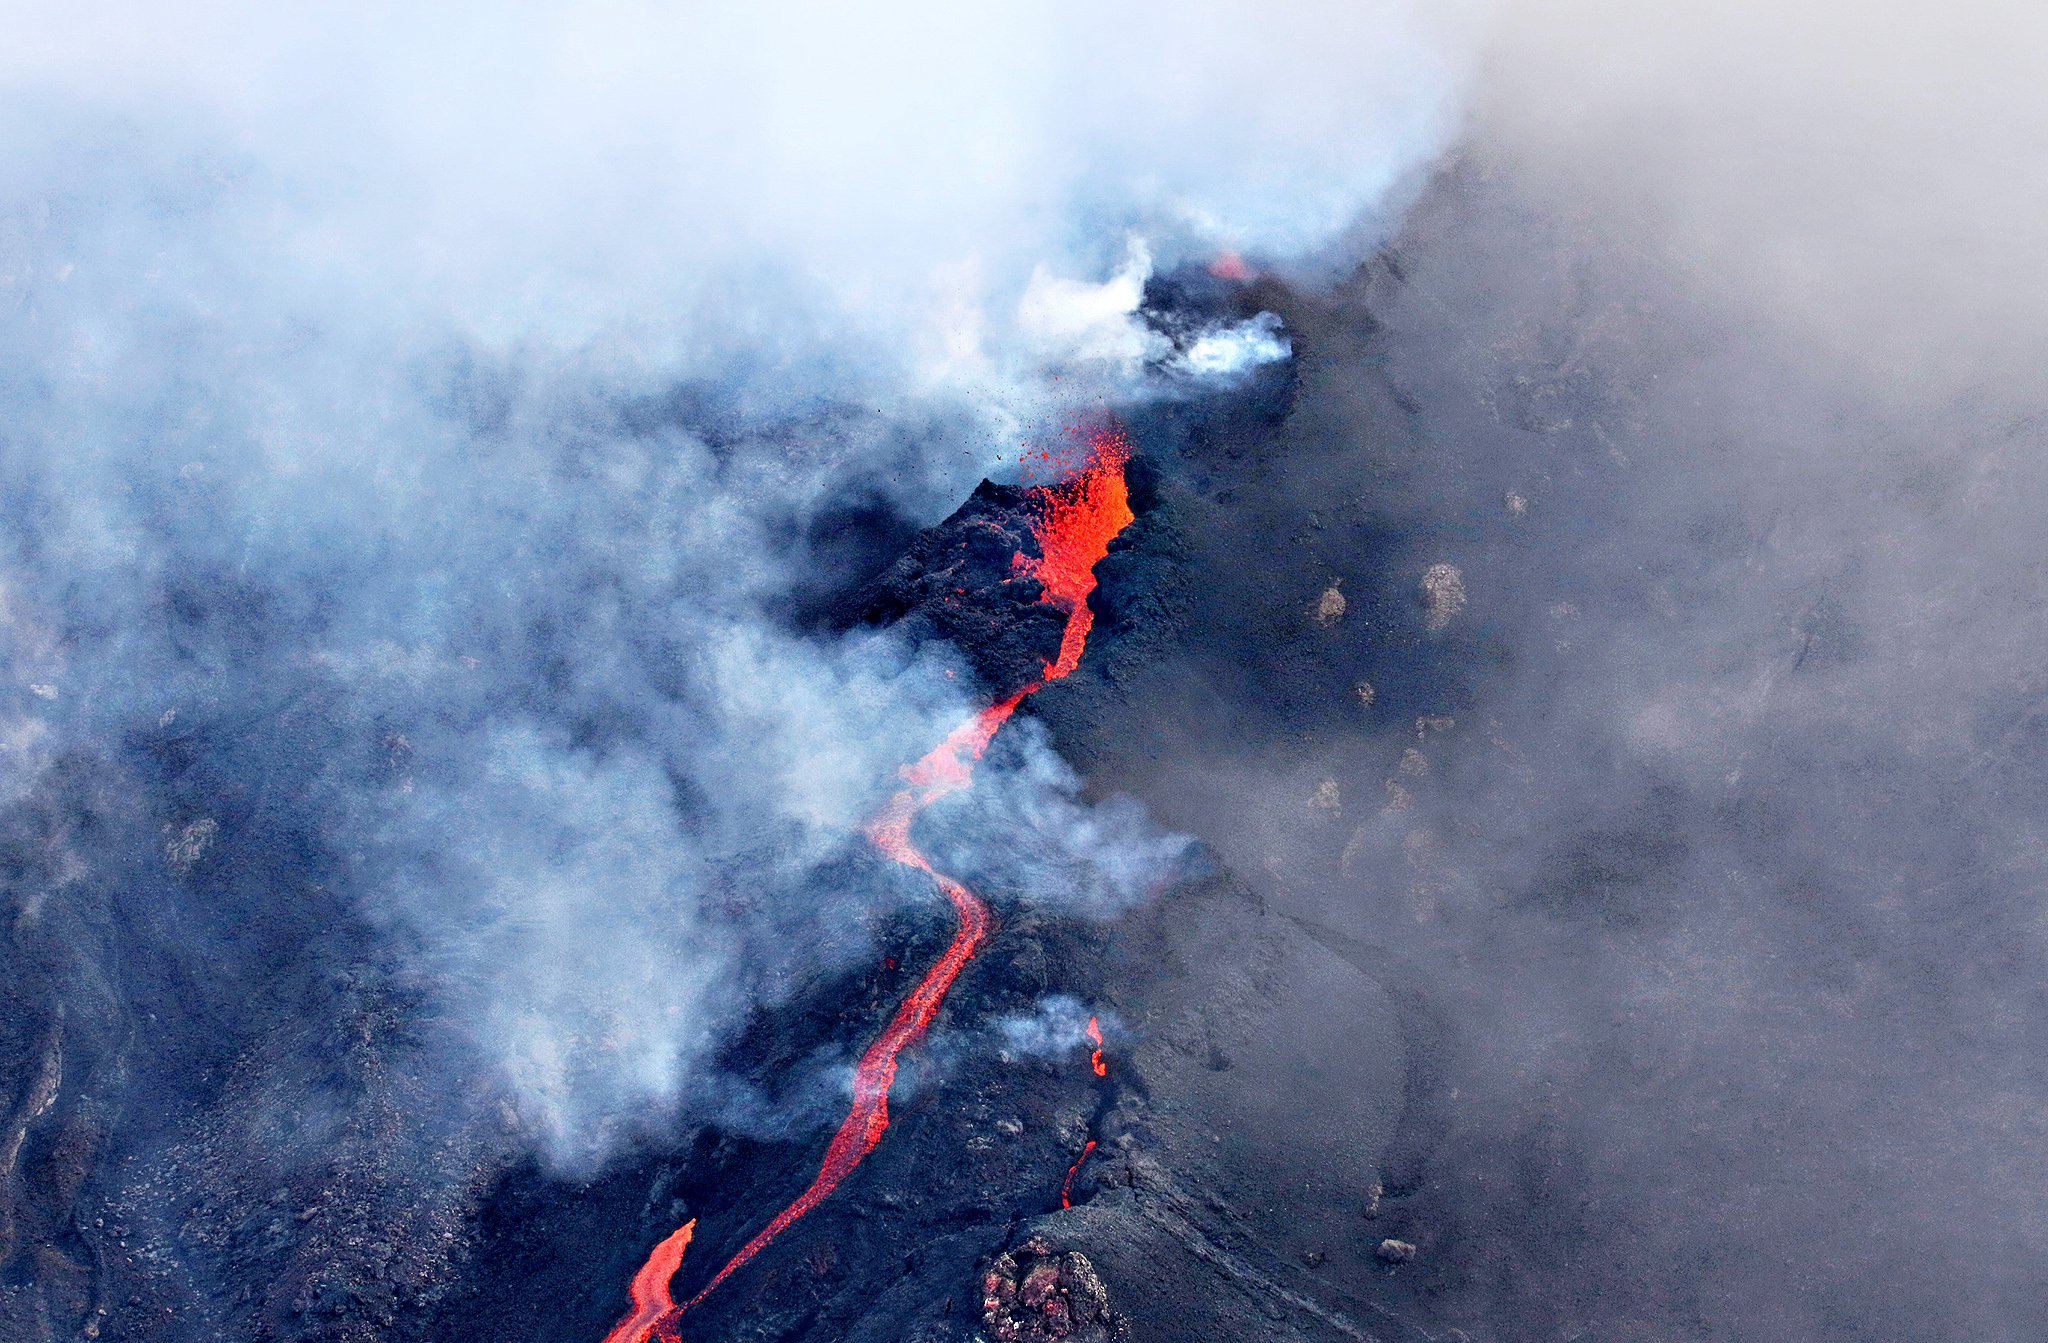 Reunion Island's active volcano, the Piton de la Fournaise, erupting near the Dolomieu, Bory and Rivals craters on the French Island of Reunion.